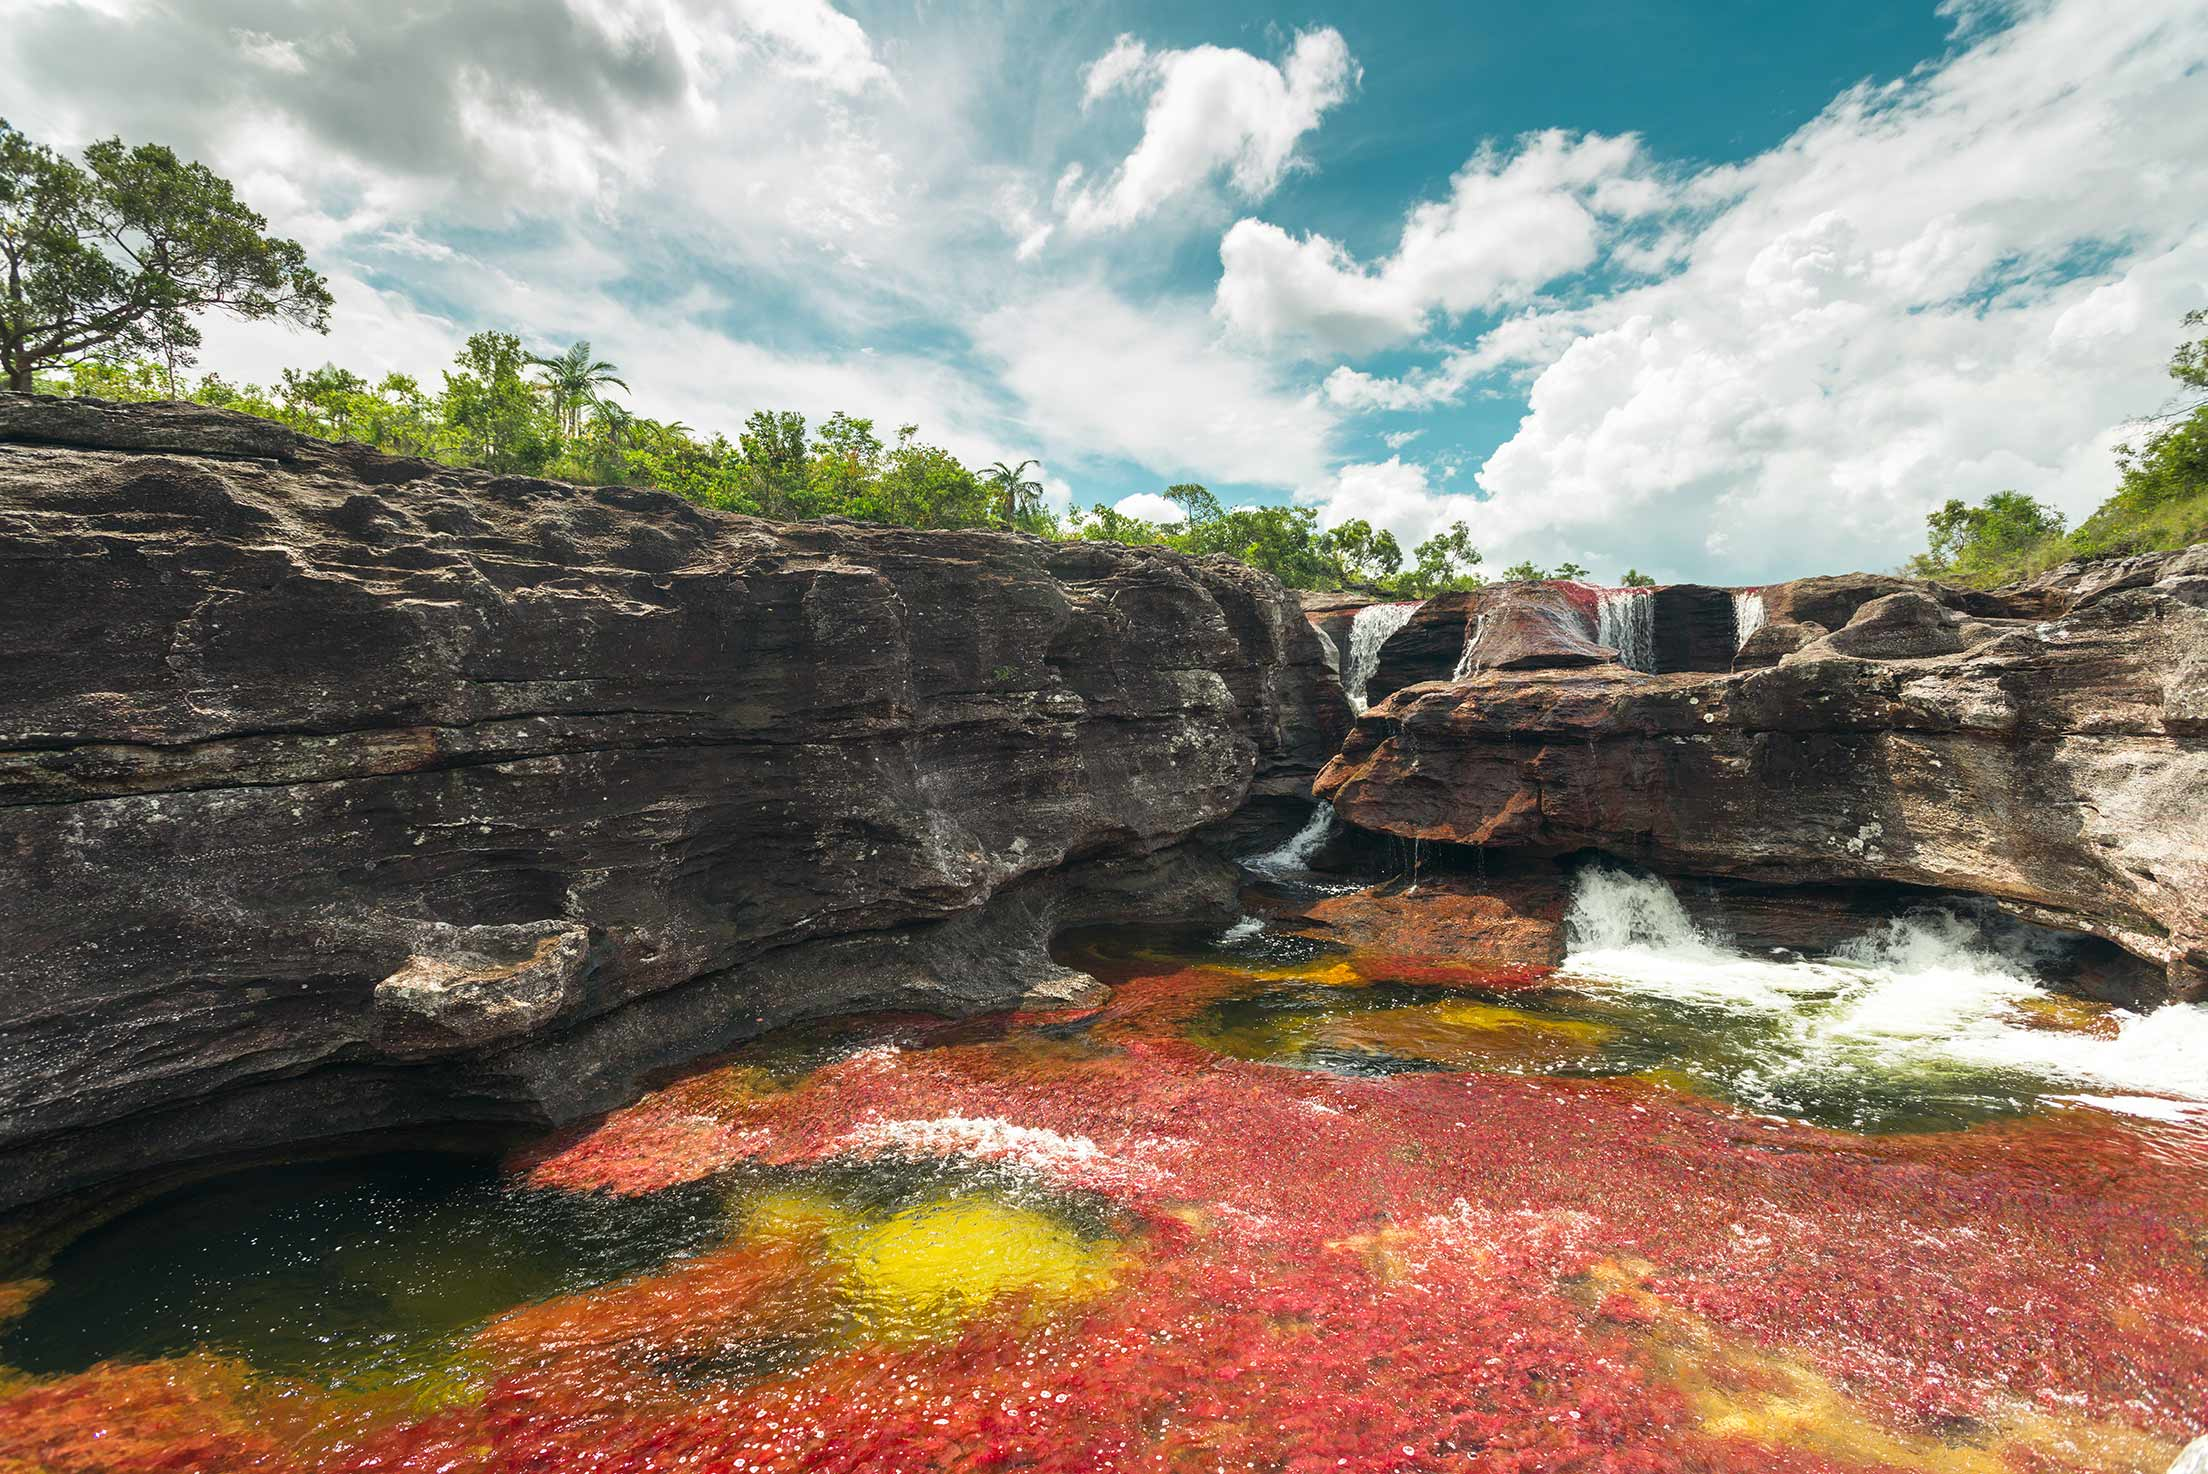 Caño Cristales | Photo by Mario Carvajal